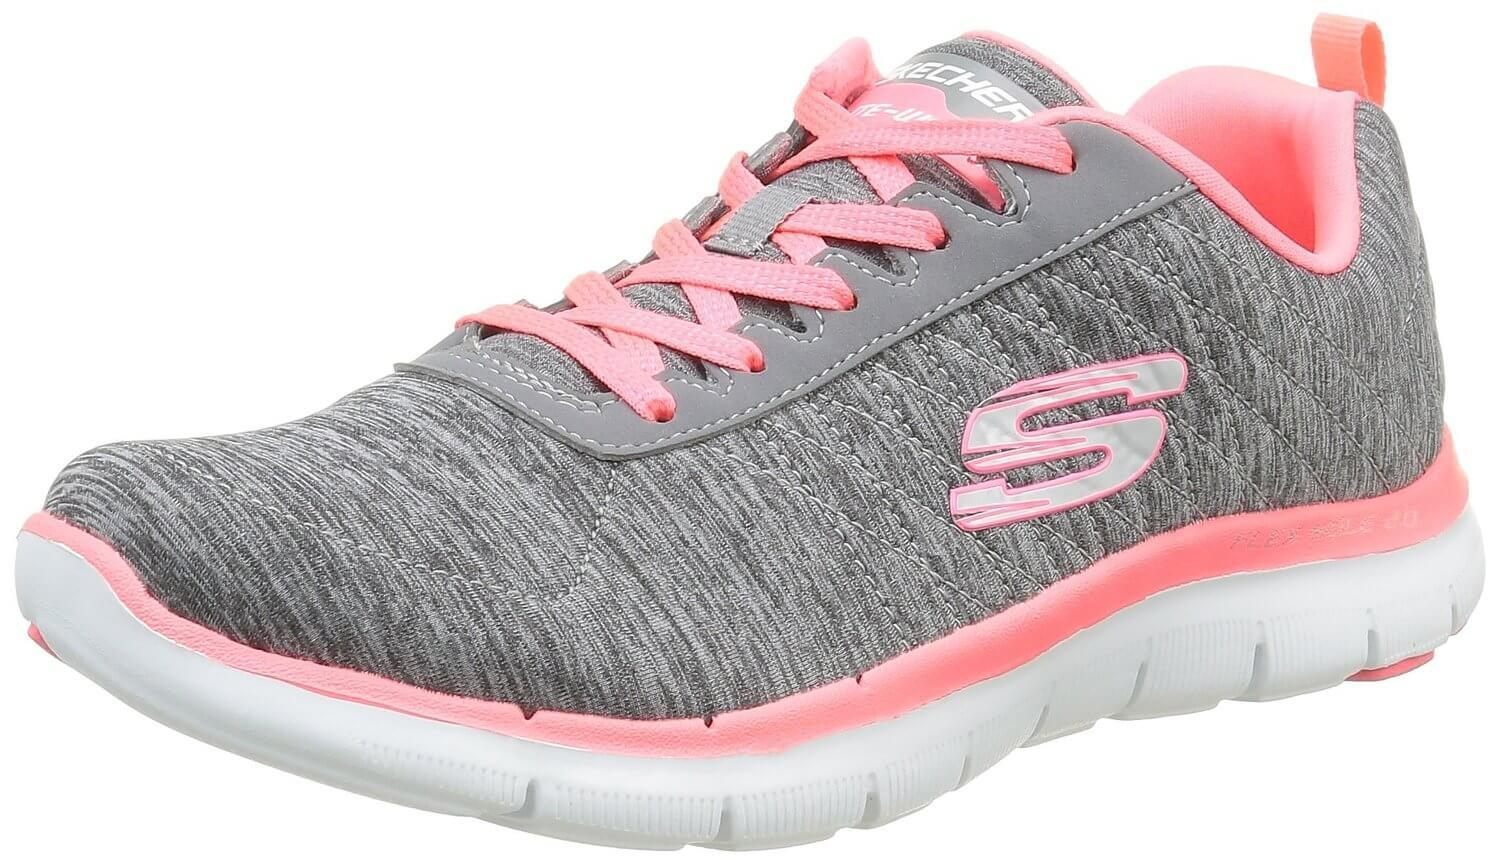 69504e7534644 Skechers Flex Appeal Review - To Buy or Not in May 2019